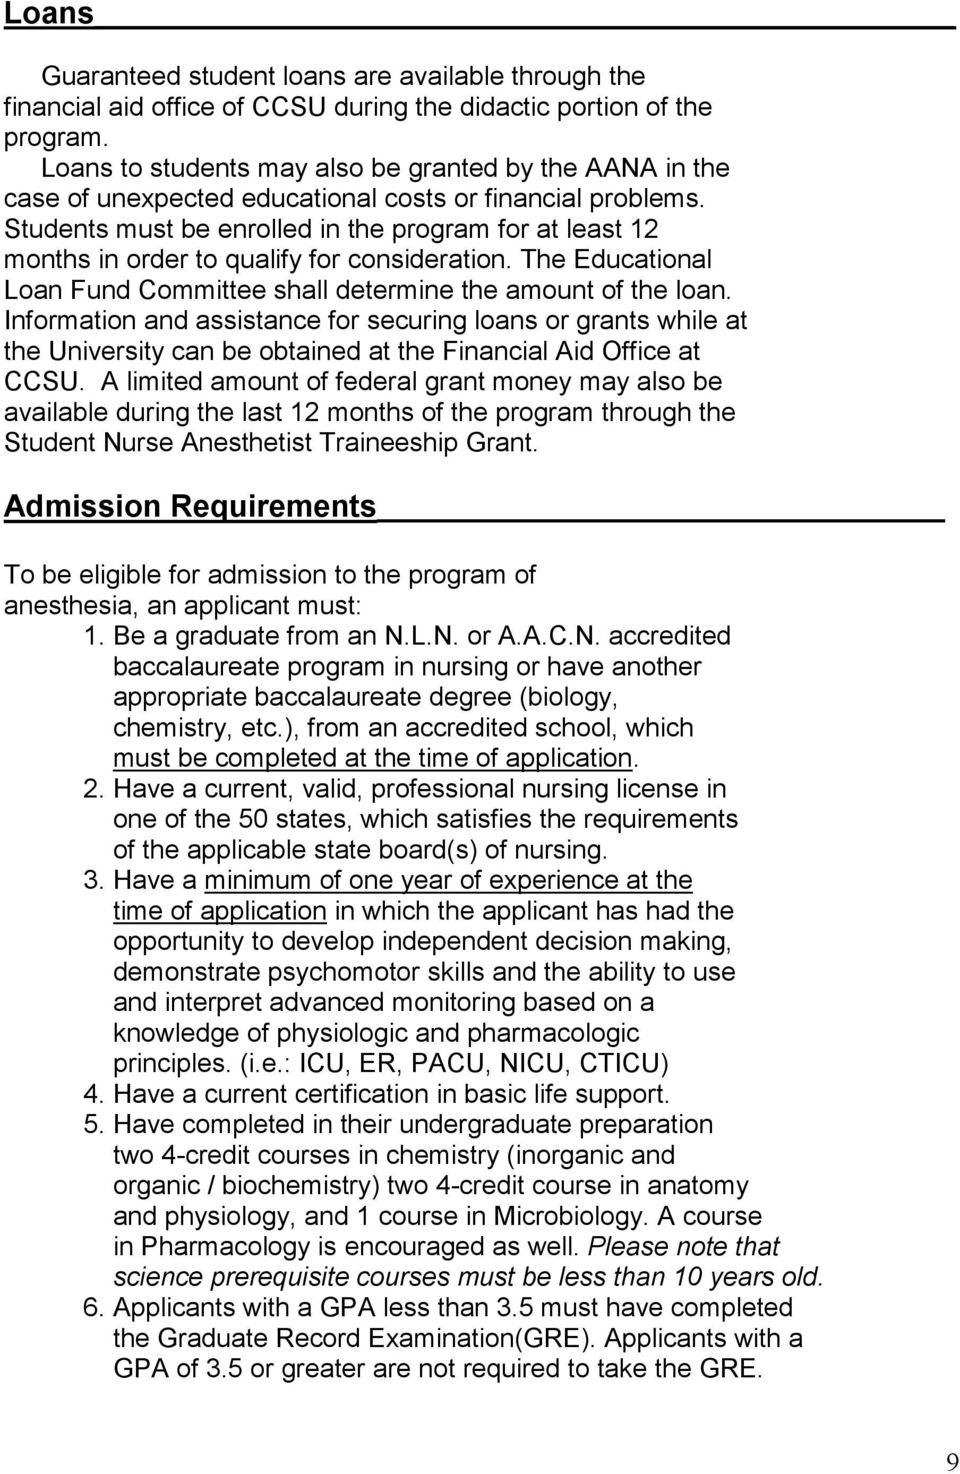 Students must be enrolled in the program for at least 12 months in order to qualify for consideration. The Educational Loan Fund Committee shall determine the amount of the loan.